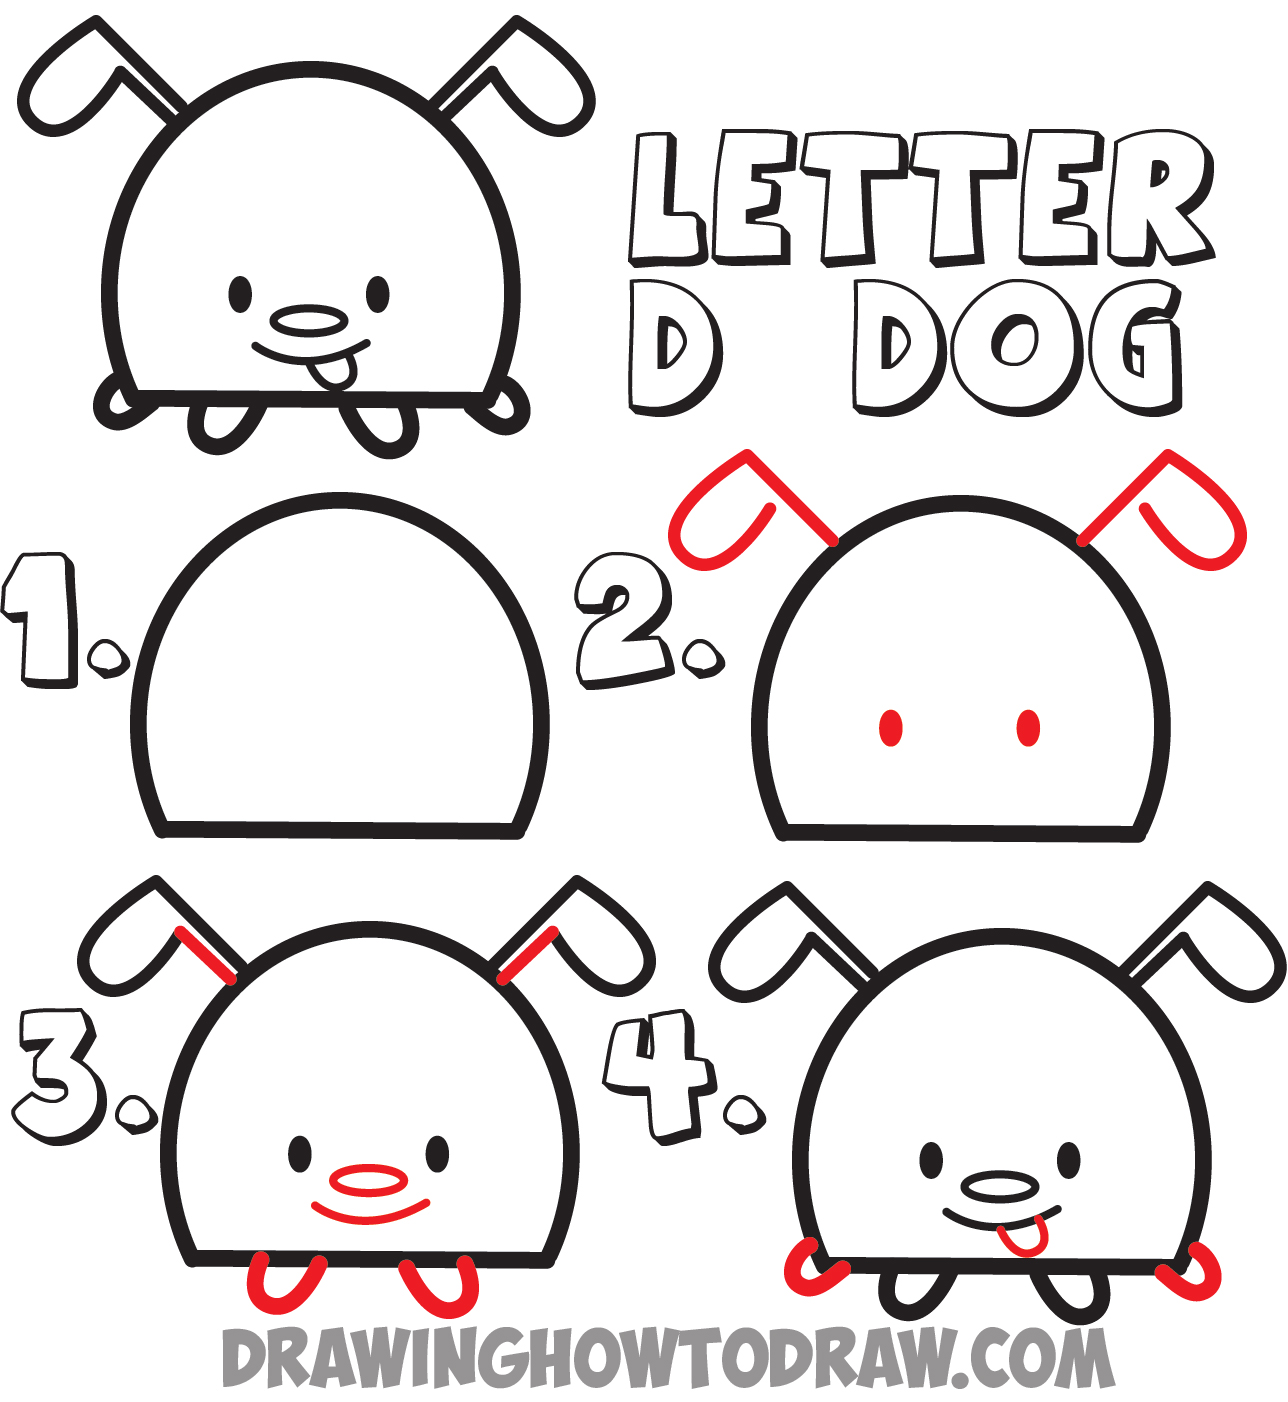 Huge guide to drawing cartoon animals from the uppercase letter d letter d cartoon dogs step by step how to draw ccuart Image collections